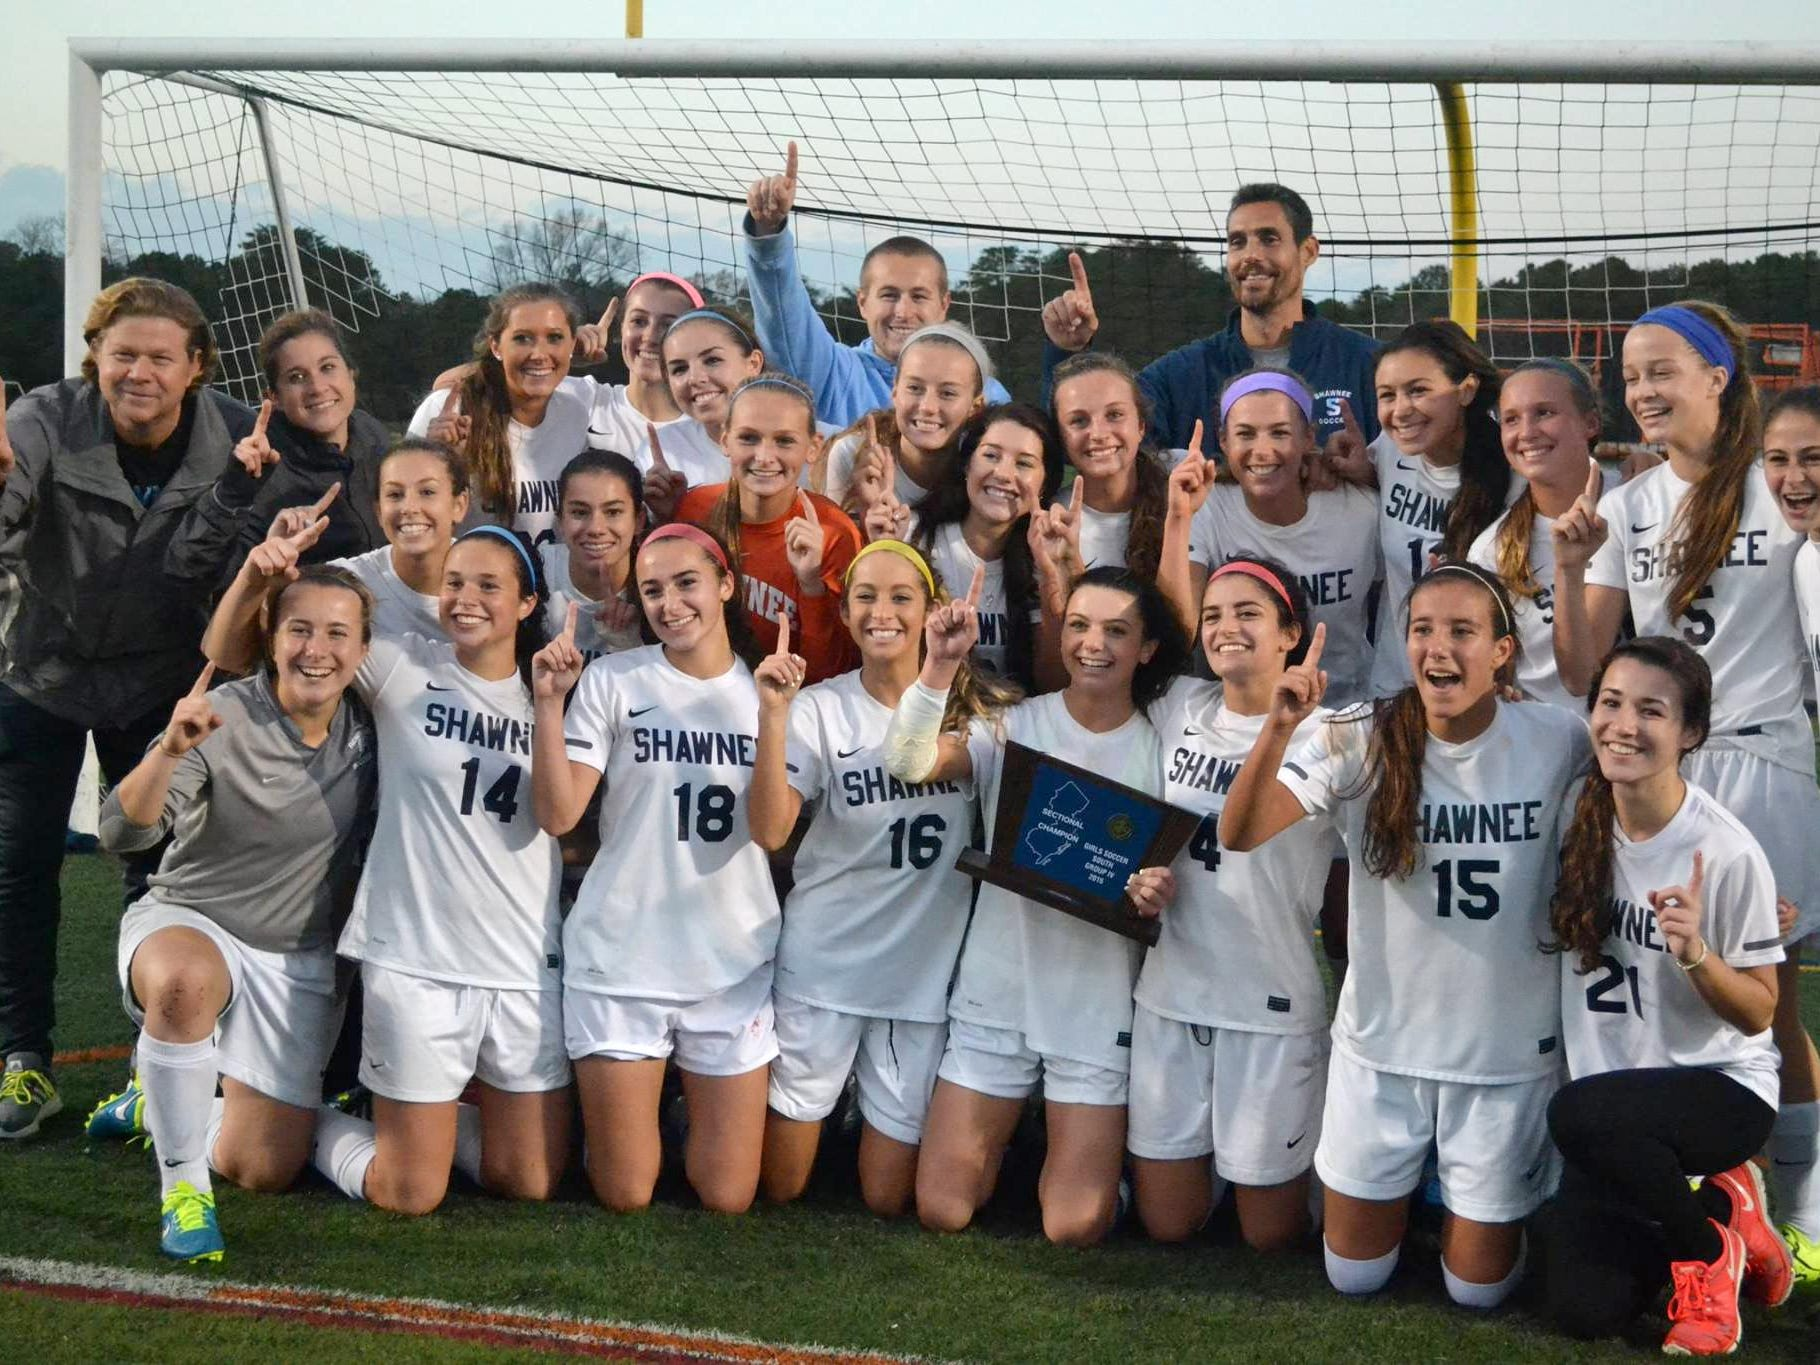 The Shawnee High School girls' soccer team claimed the South Jersey Group 4 title and is the Courier-Post Team of the Year.